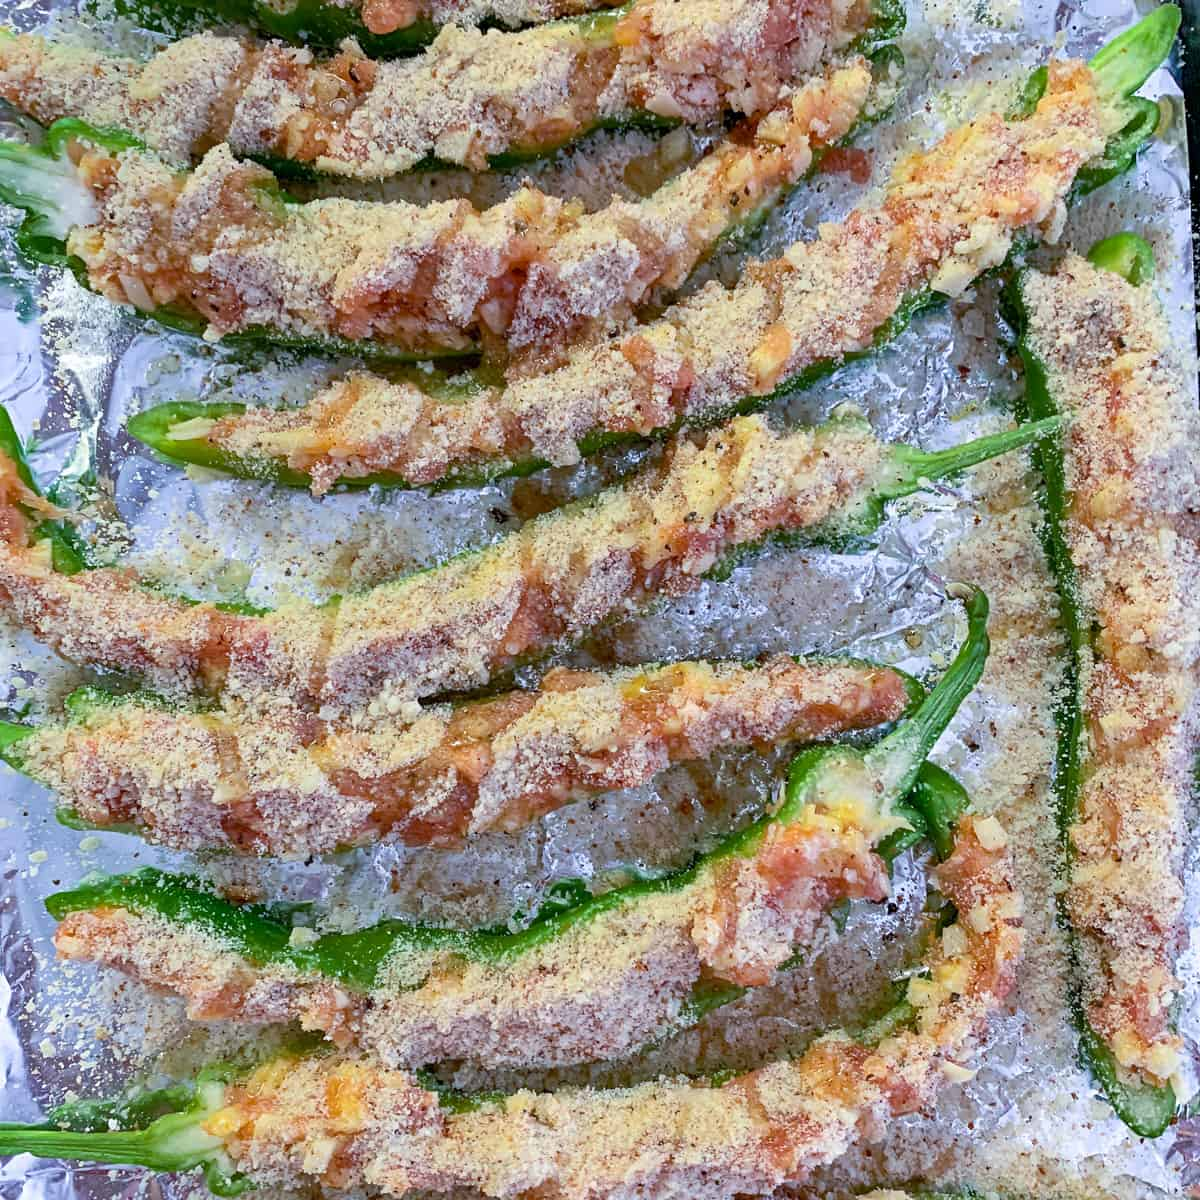 stuffed Italian long hots drizzled with olive oil ready to be baked or grilled